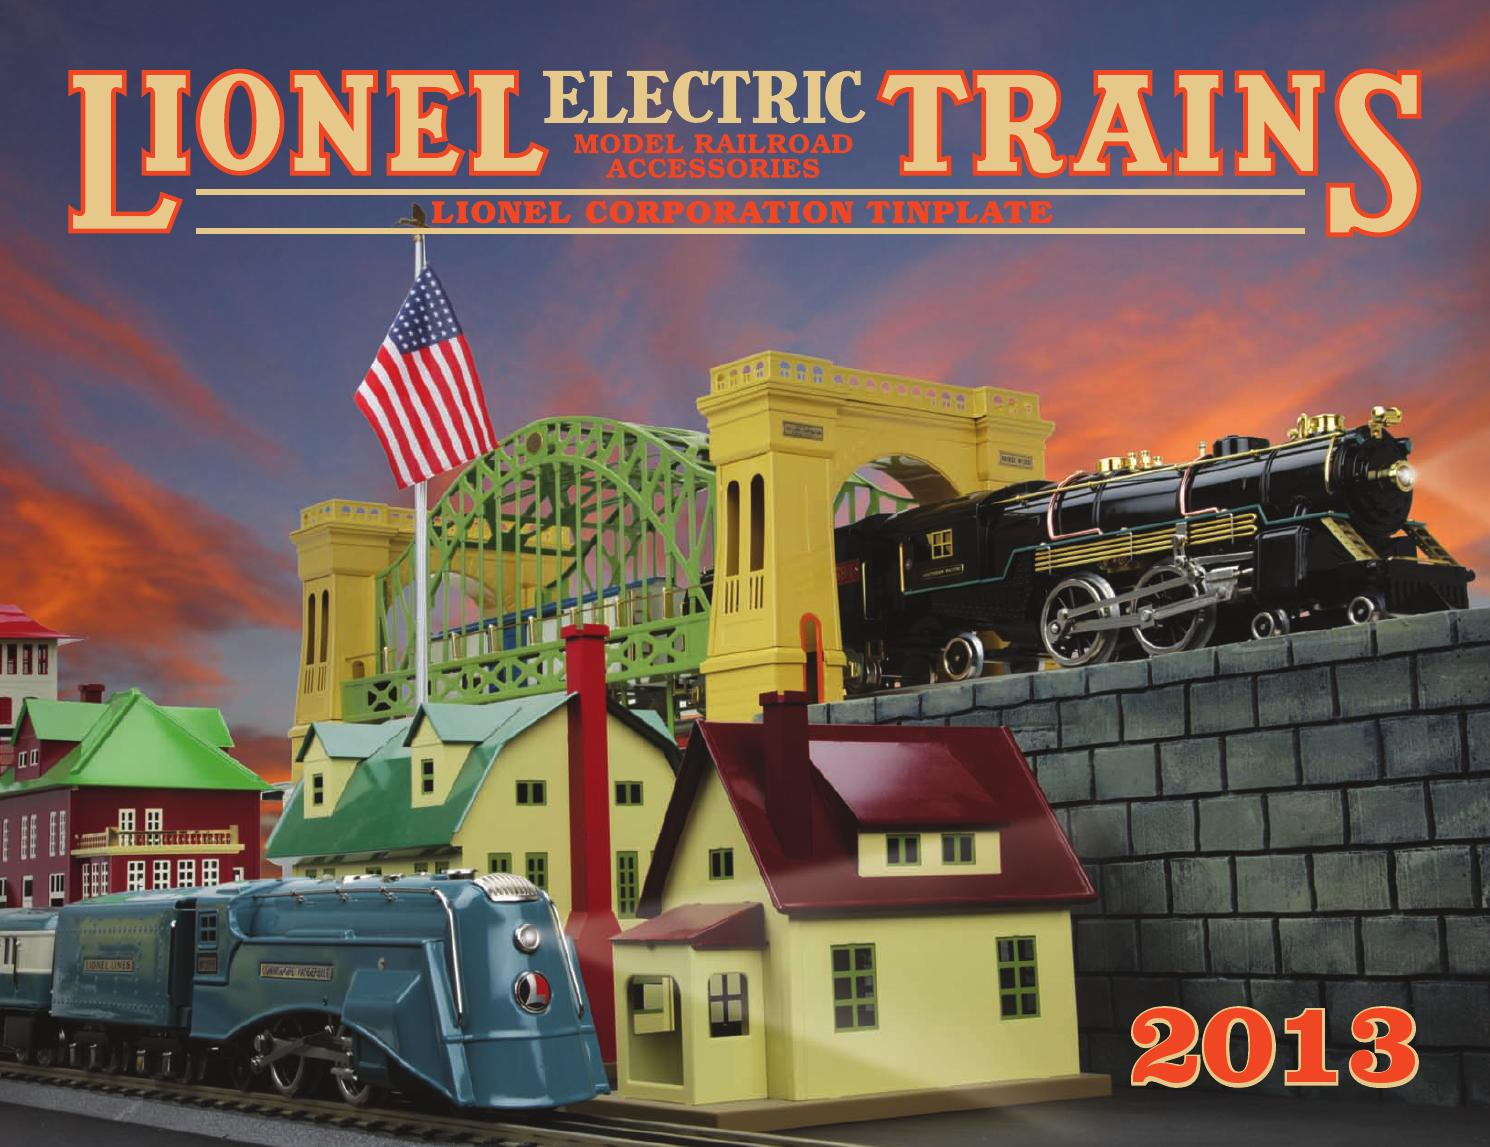 hight resolution of lionel 2013 by modellismoferroviario it issuu american flyer train parts diagram lionel 256 engine exploded diagrams